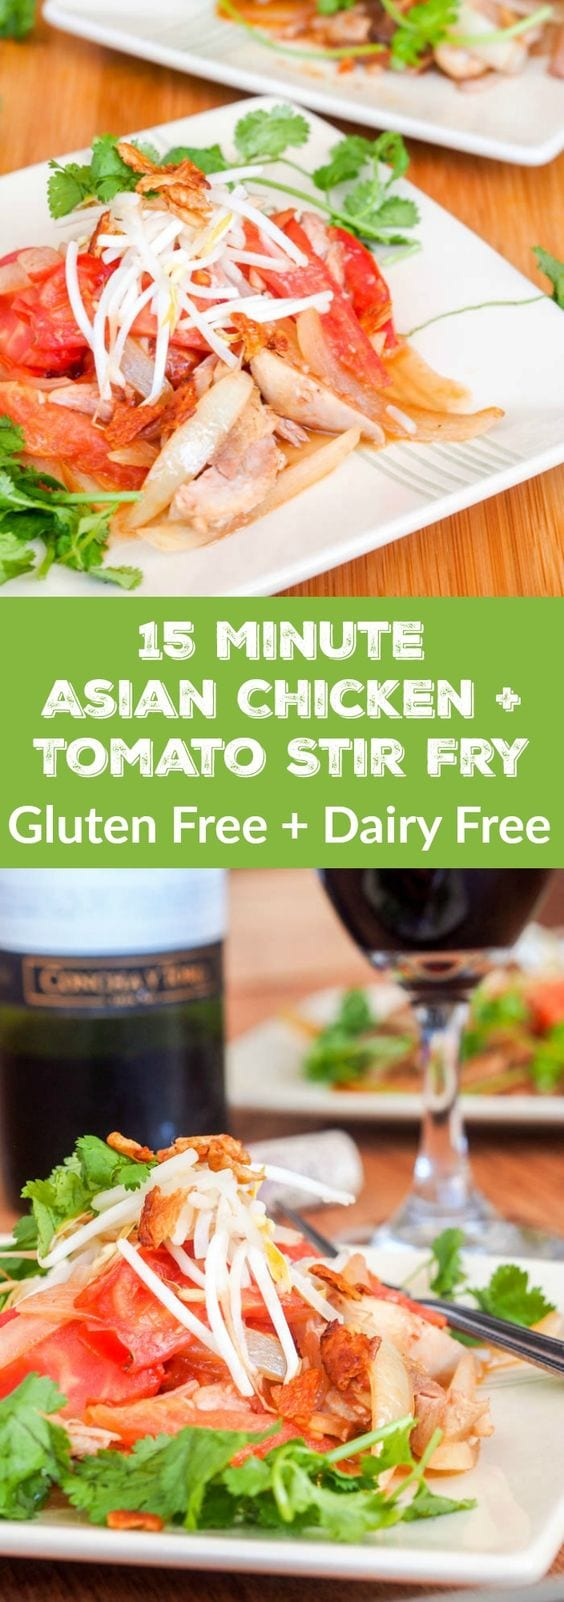 This Asian quick chicken stir fry cooked with ginger, onion and tomatoes comes together in just 15 minutes and is packed full of flavor thanks to a red wine tamari sauce. Perfect homemade takeout or a quick weeknight dinner meal. Healthy, gluten free and dairy free. #dinner #stirfry #asian #chicken #glutenfree